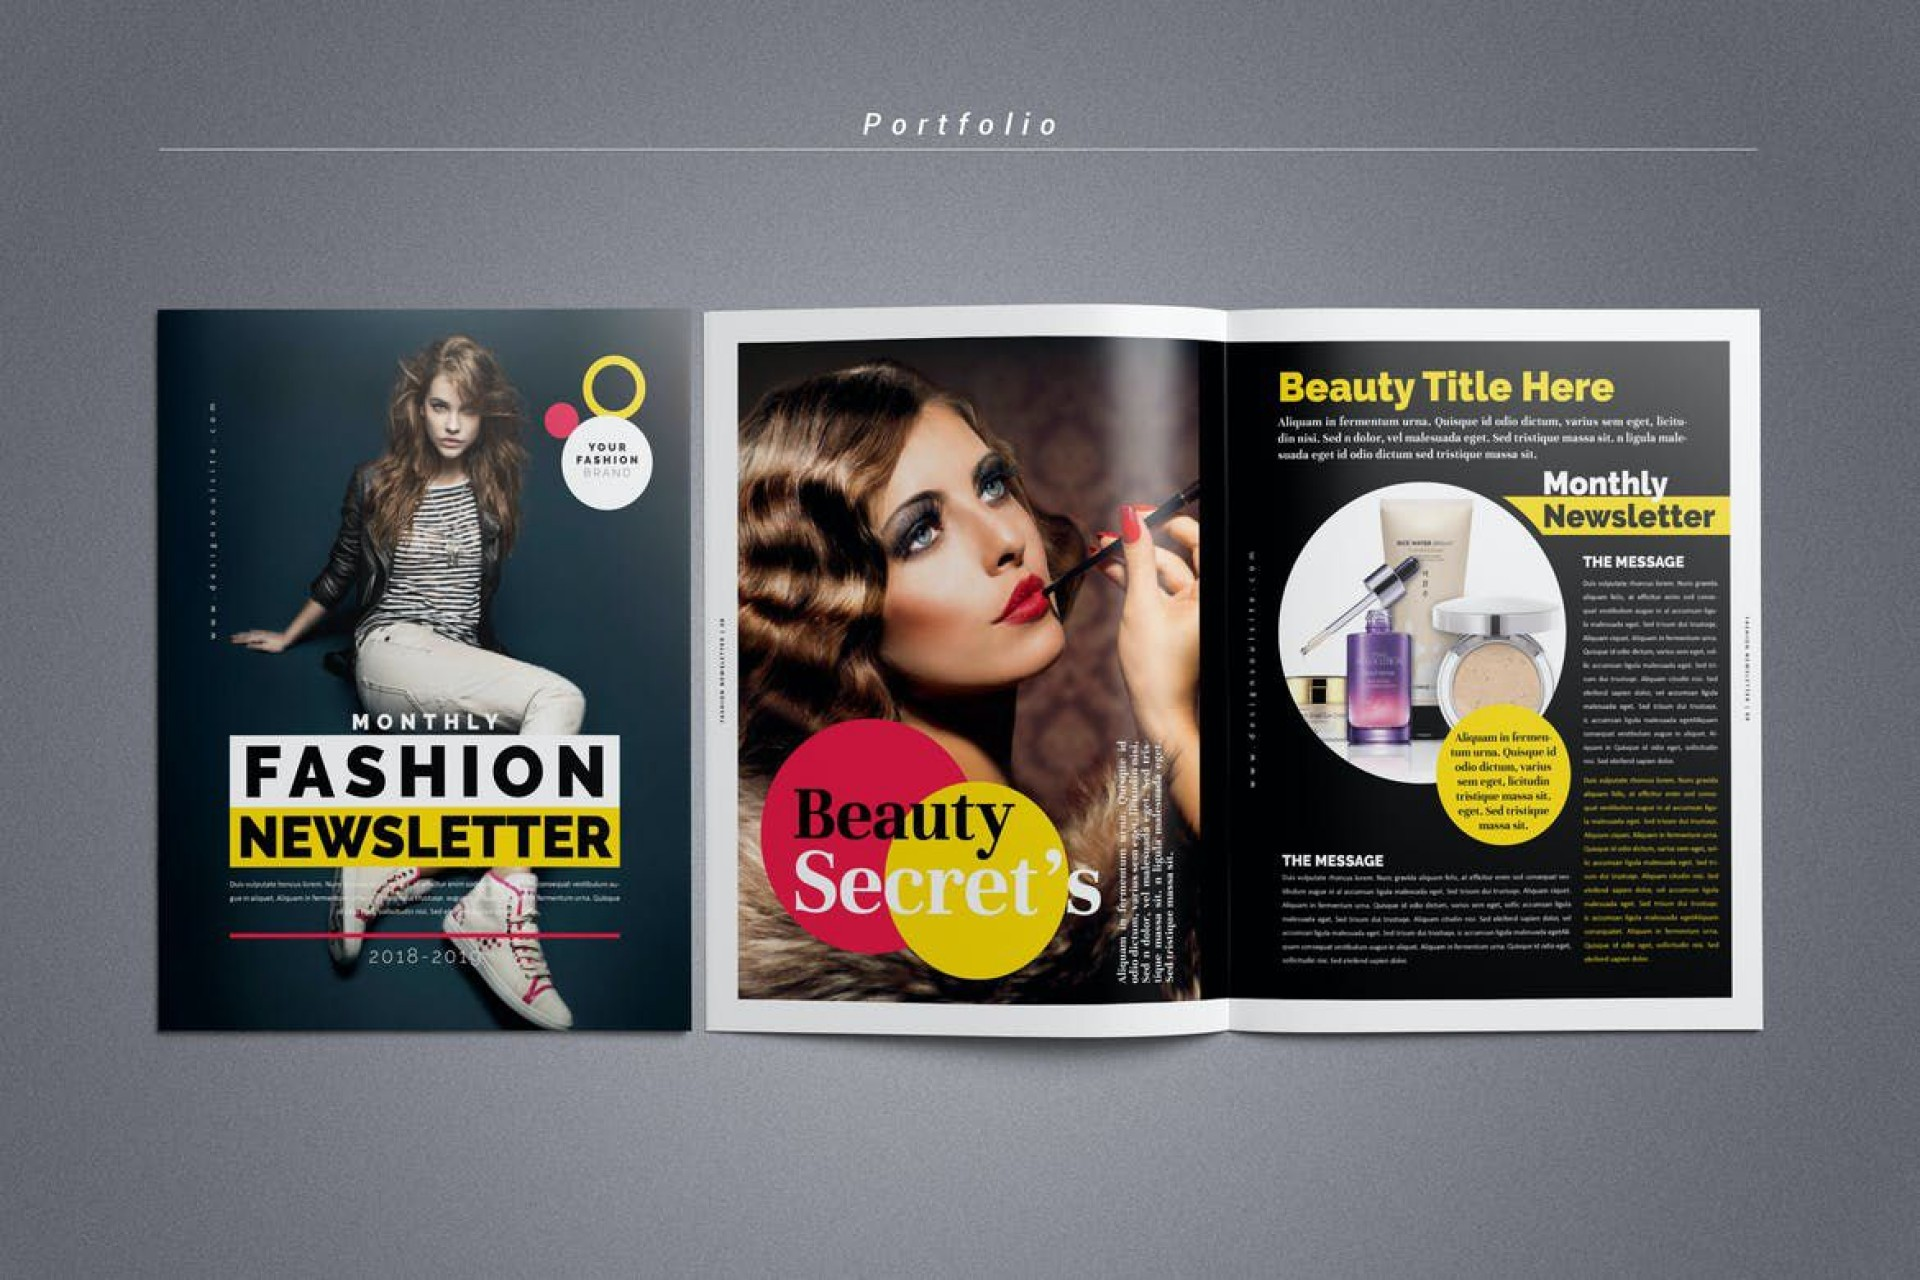 004 Marvelou Adobe Indesign Newsletter Template Free Download Highest Clarity 1920